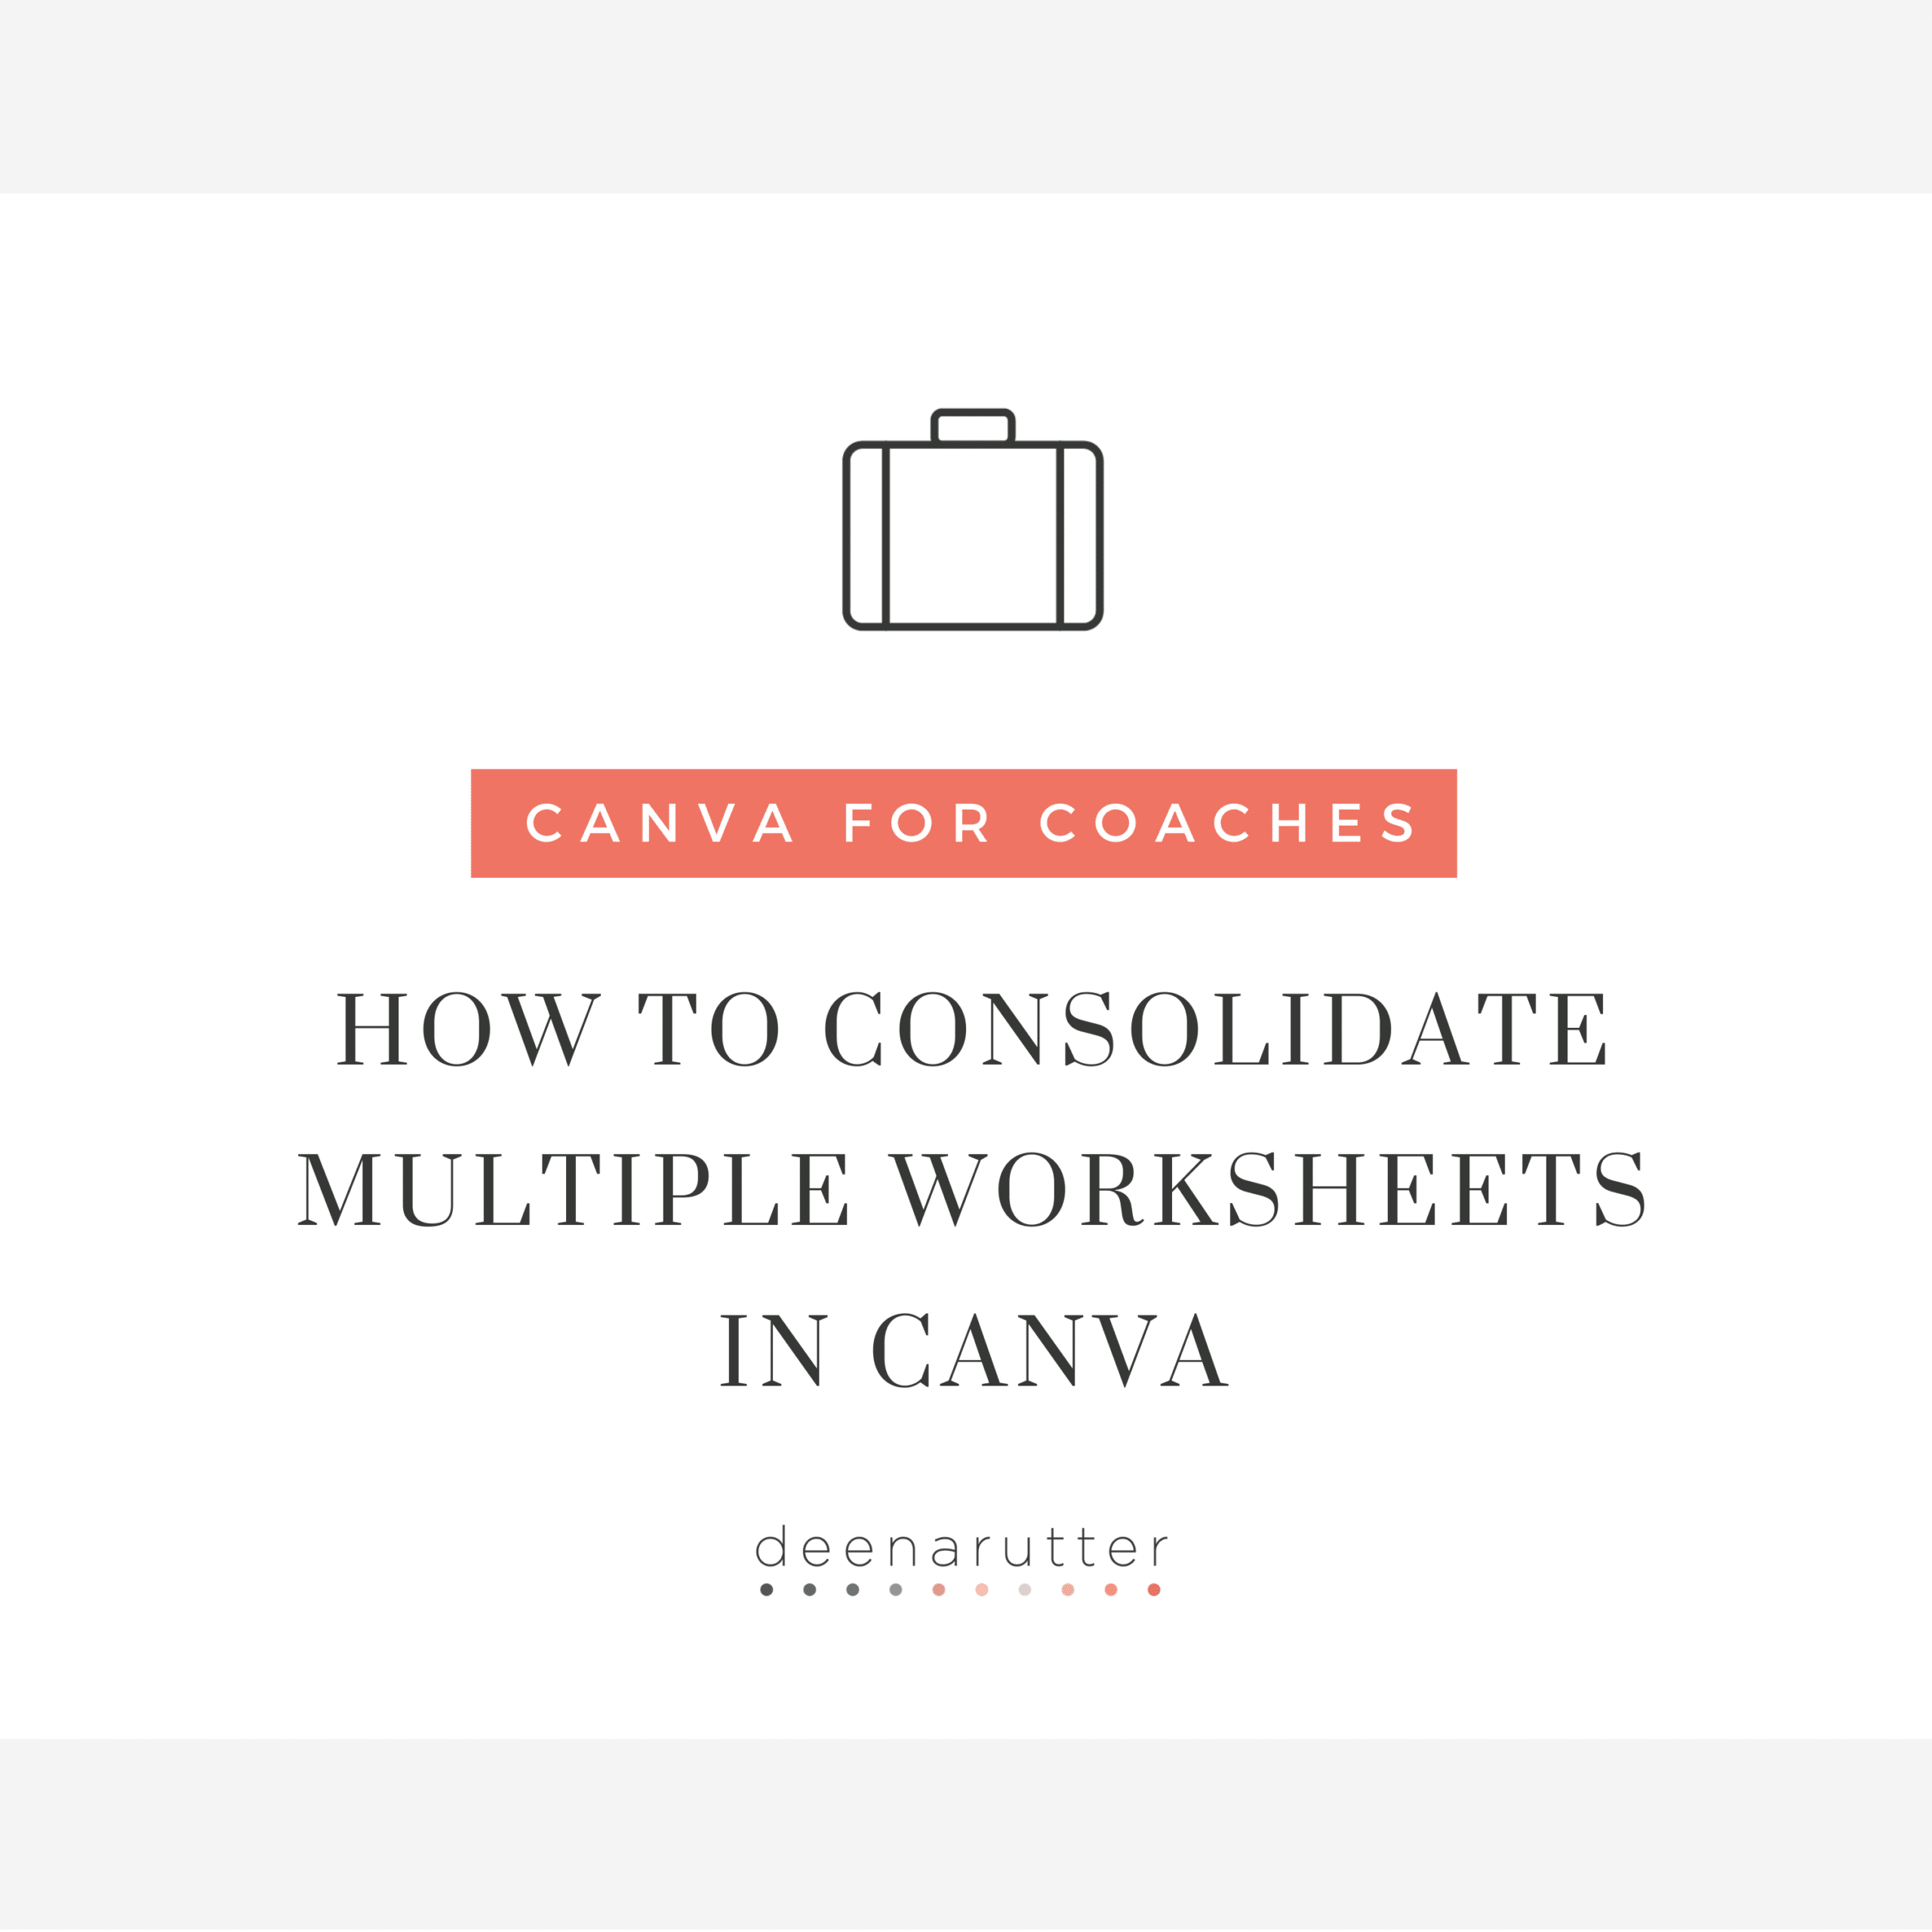 How To Consolidate Multiple Worksheets In Canva